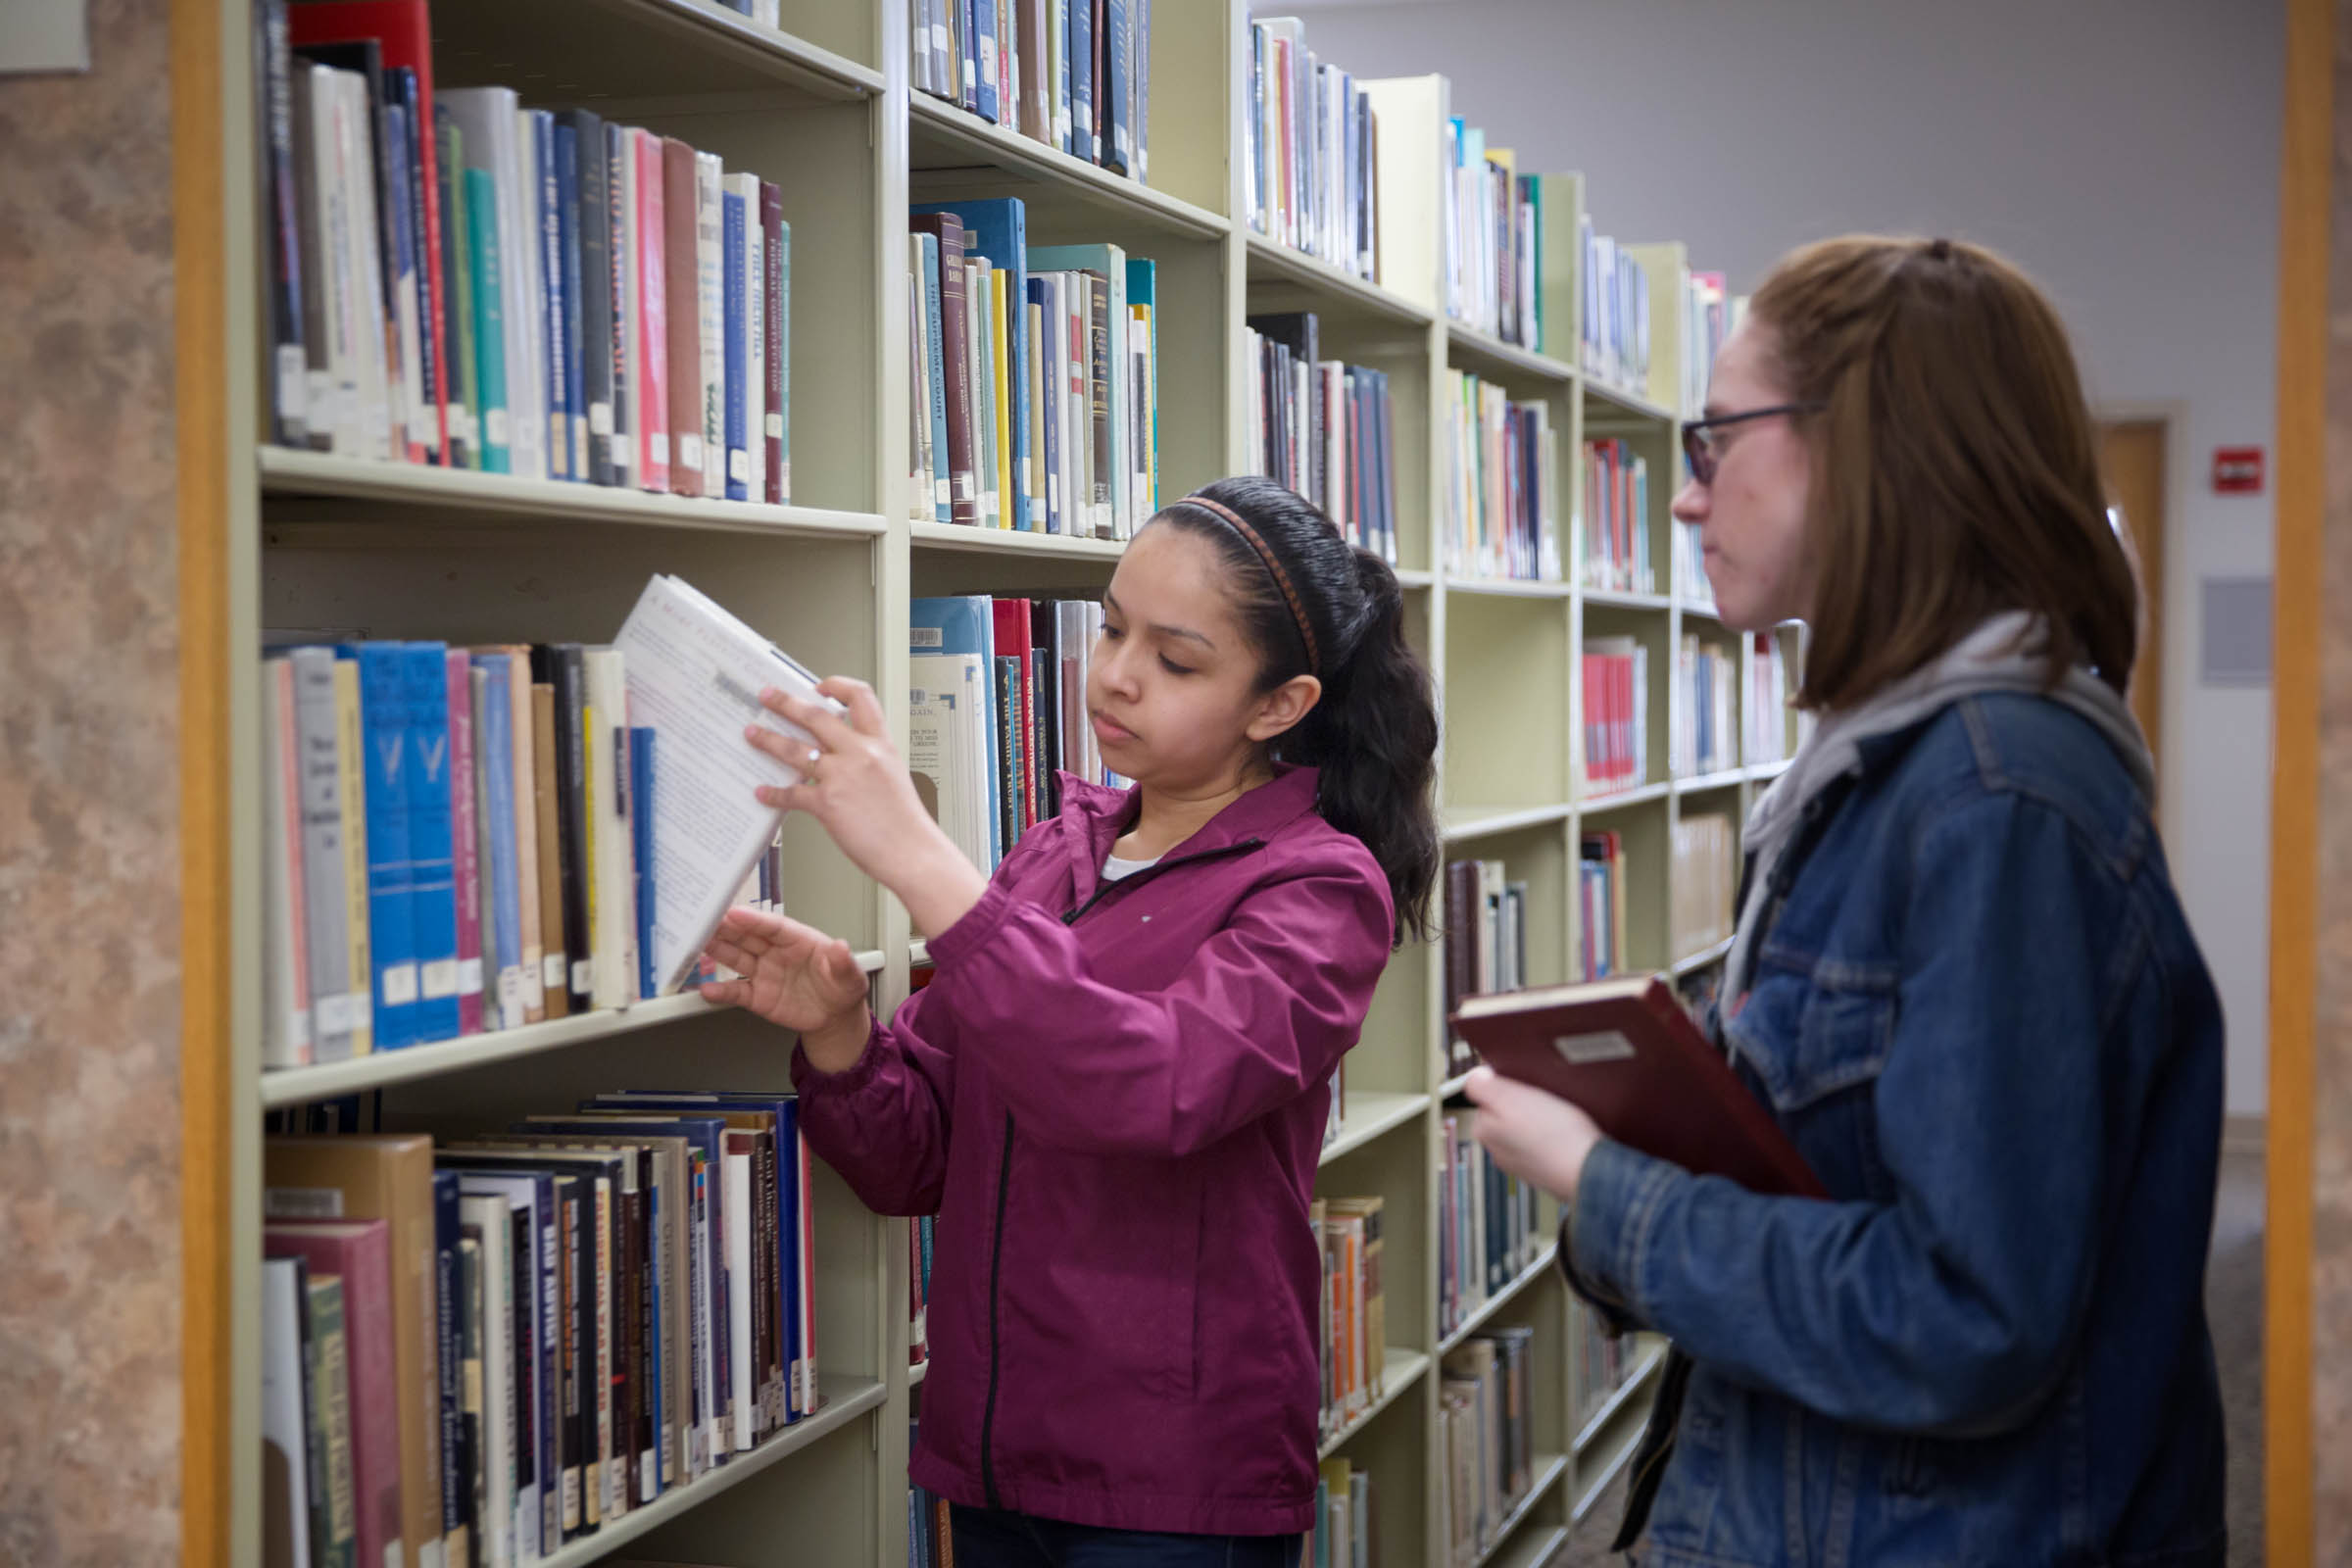 Two students obtaining a book from the library shelves